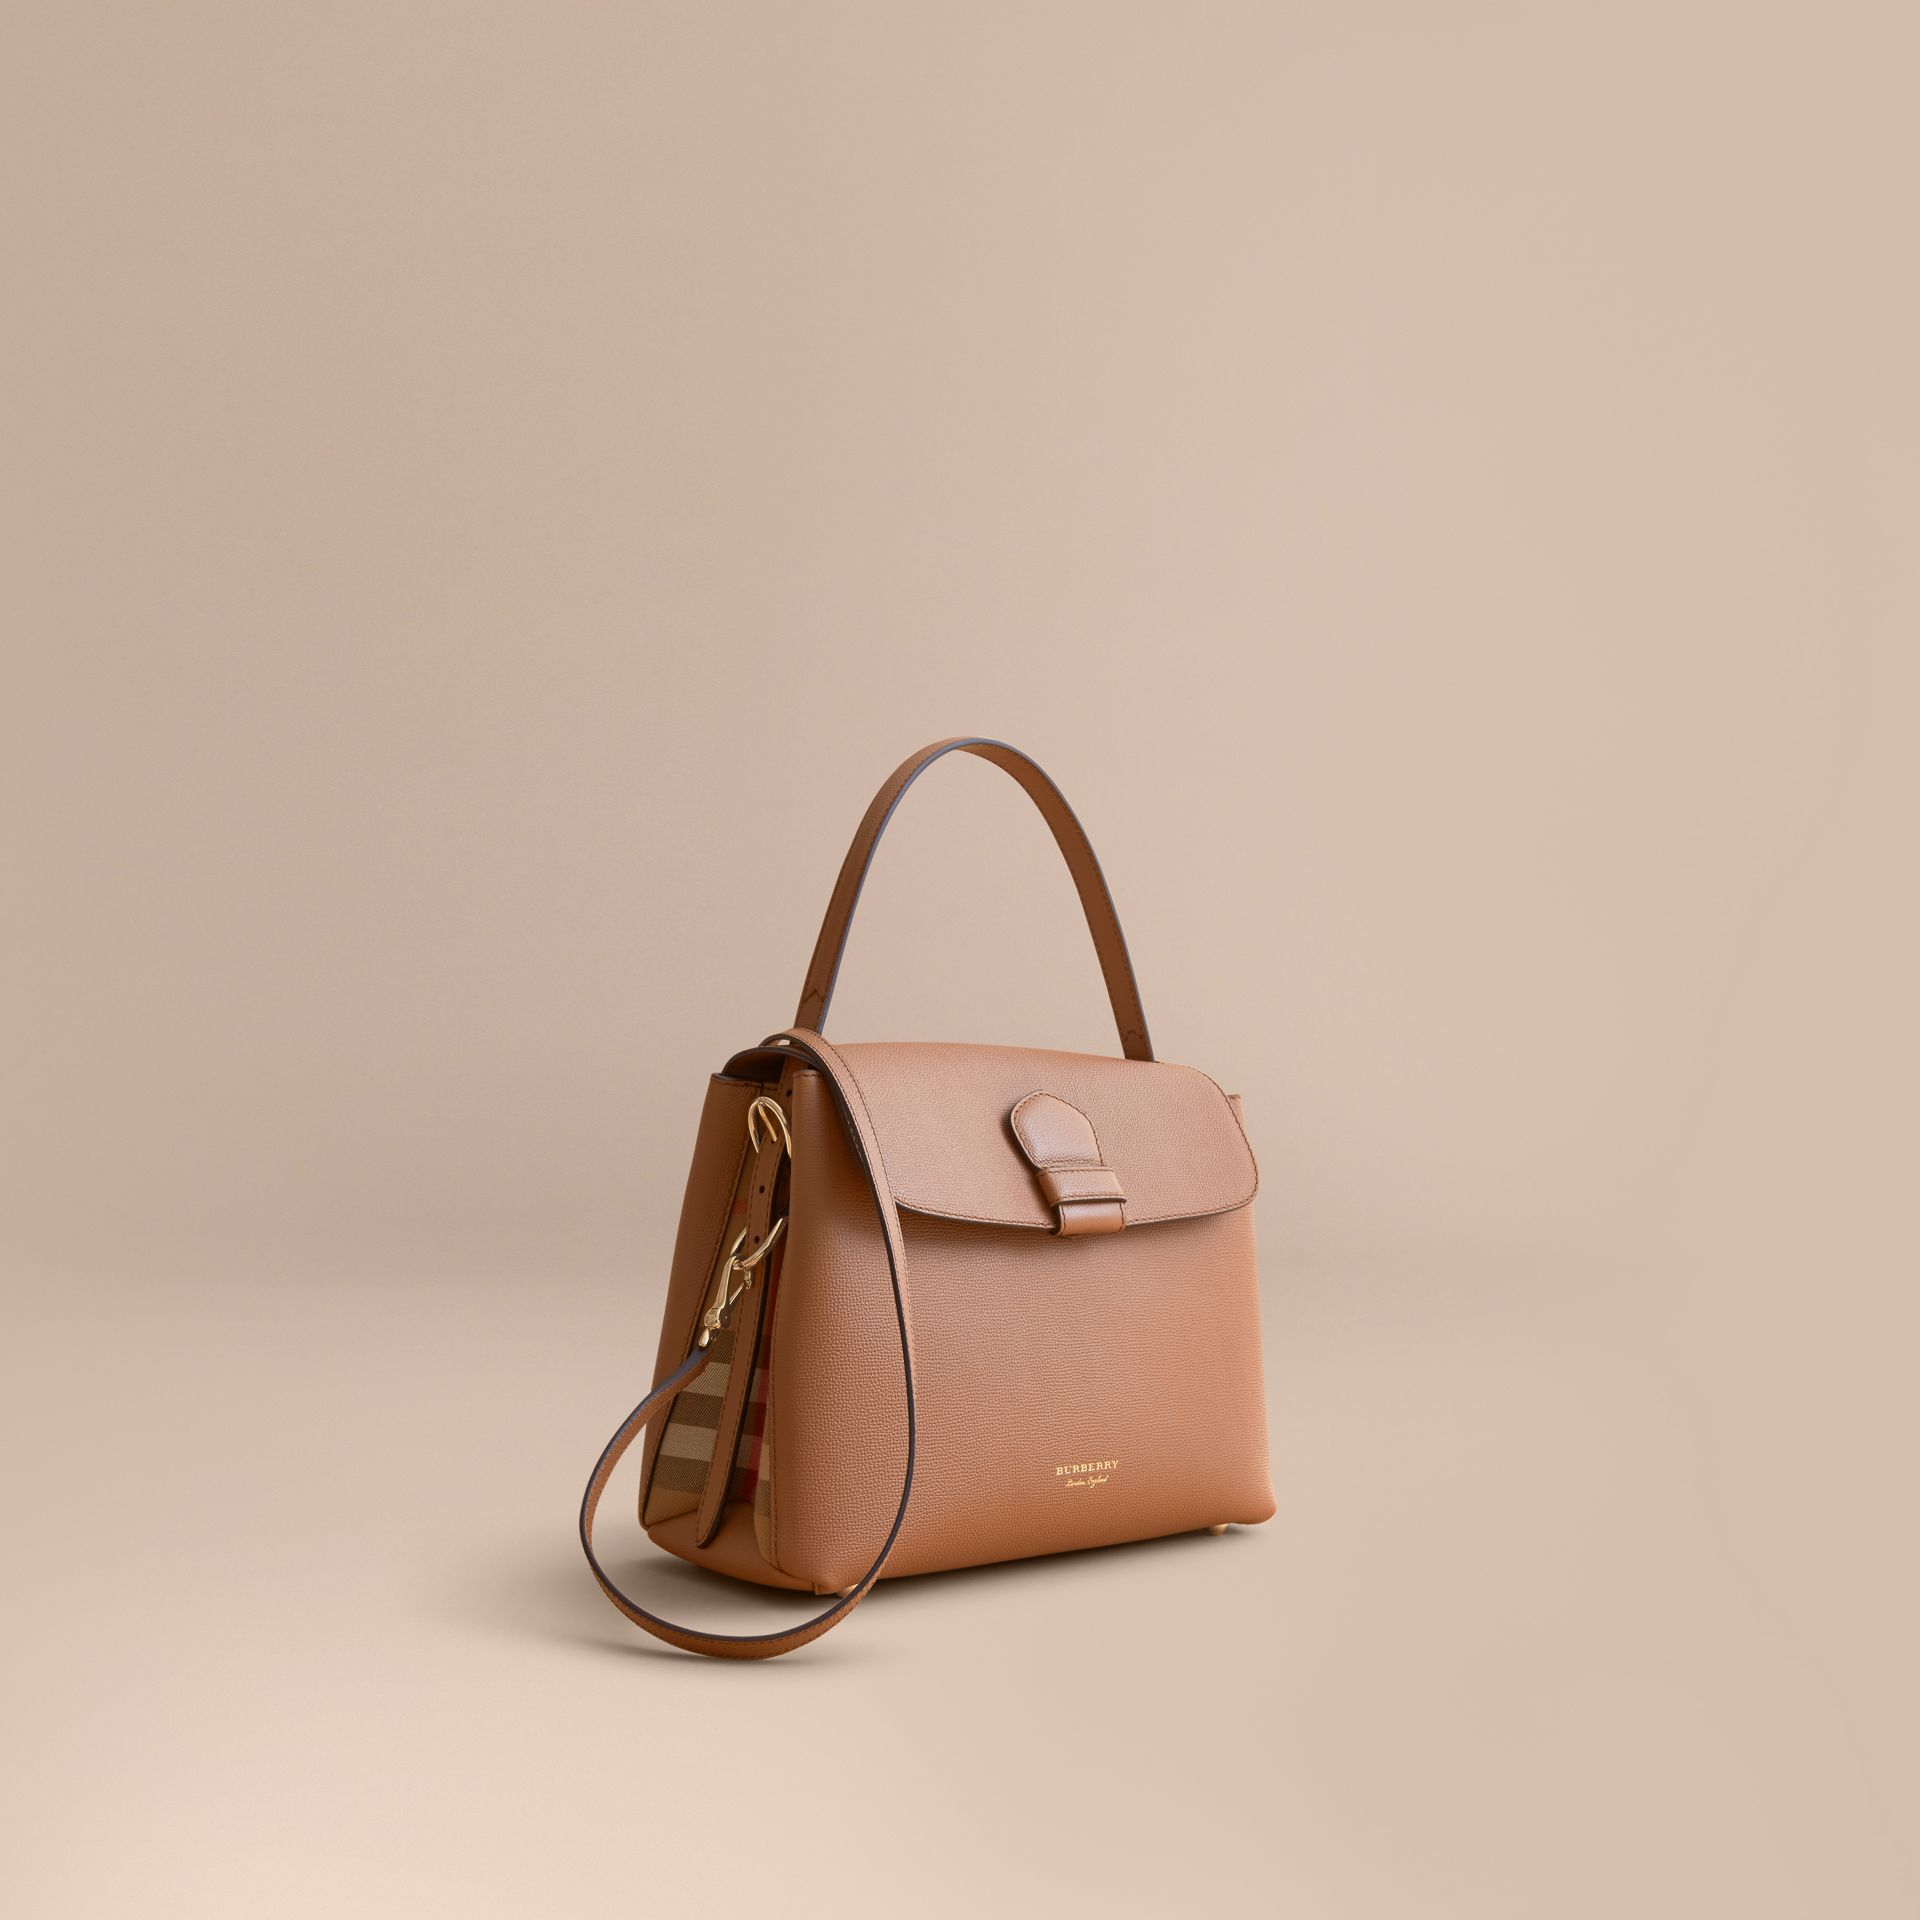 Medium Grainy Leather and House Check Tote Bag in Dark Sand - Women | Burberry Australia - gallery image 1